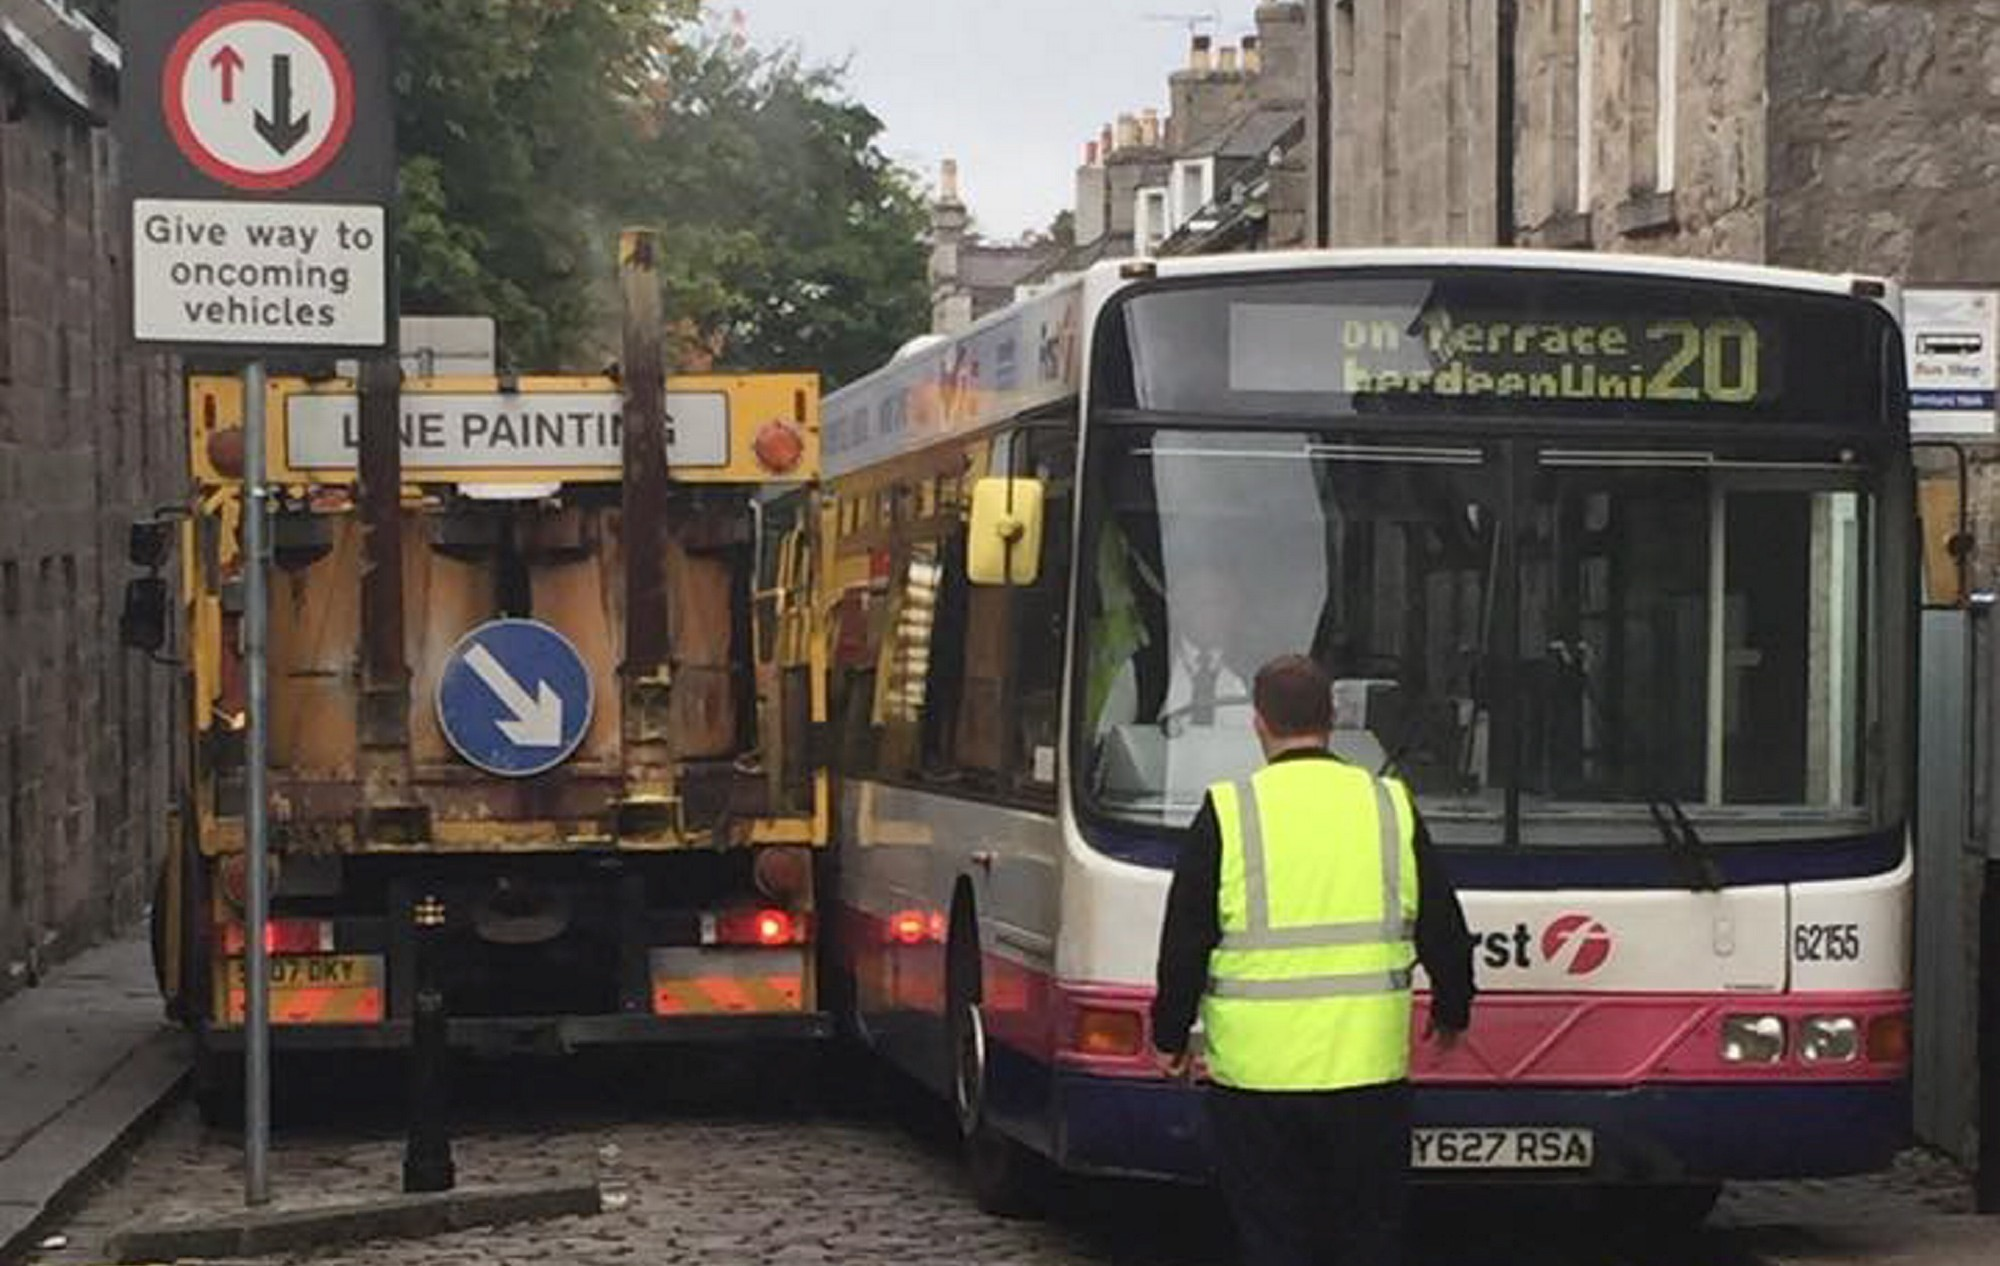 The bus got stuck alongside a council lorry on College Bounds. Picture by reader Stuart Stephen Jnr